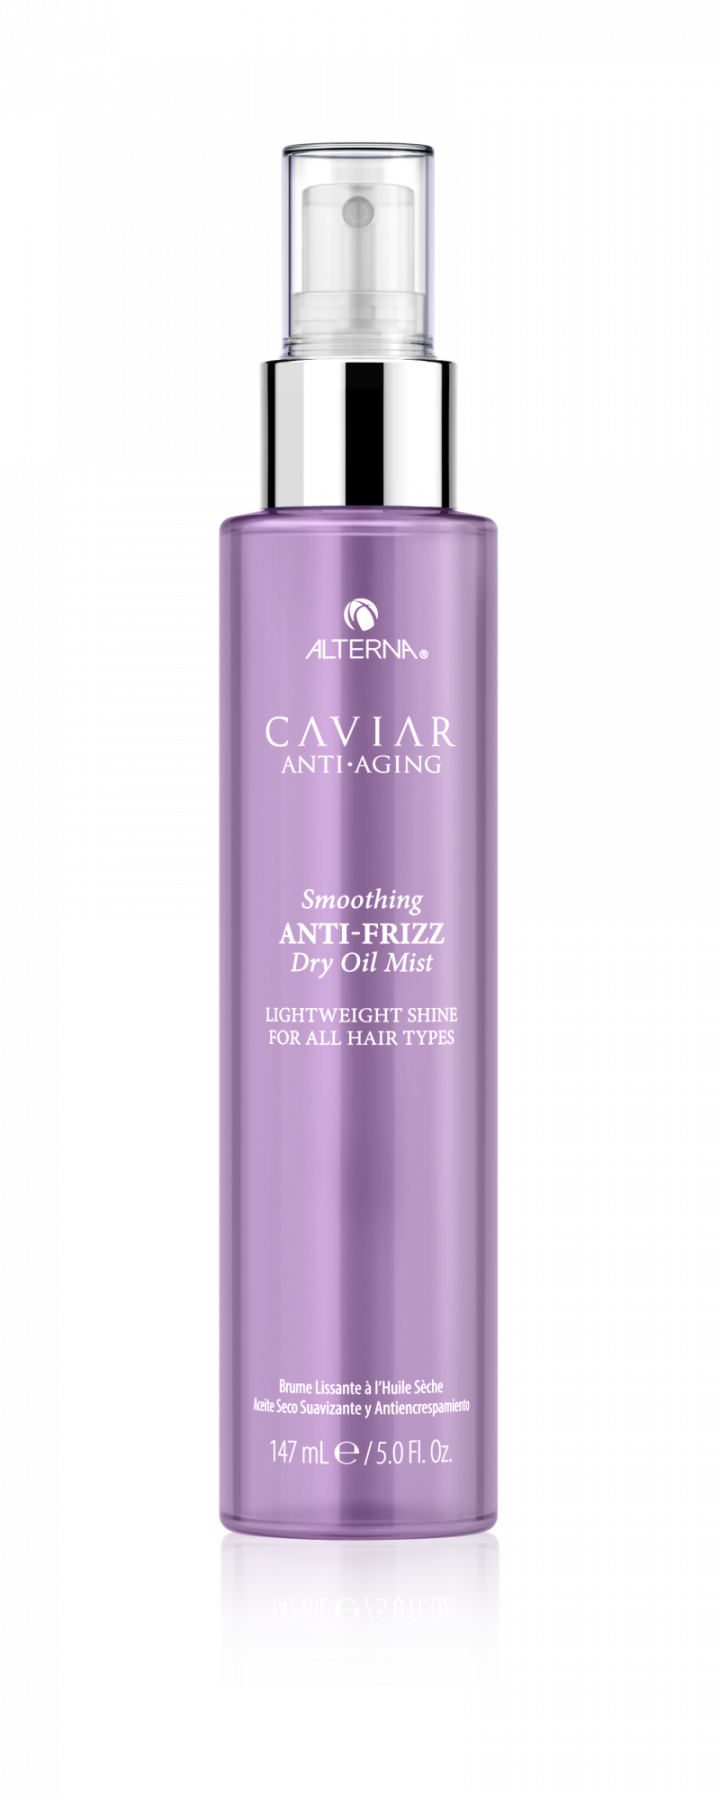 Caviar Anti-Aging SMOOTHING ANTI-FRIZZ Dry Oil Mist